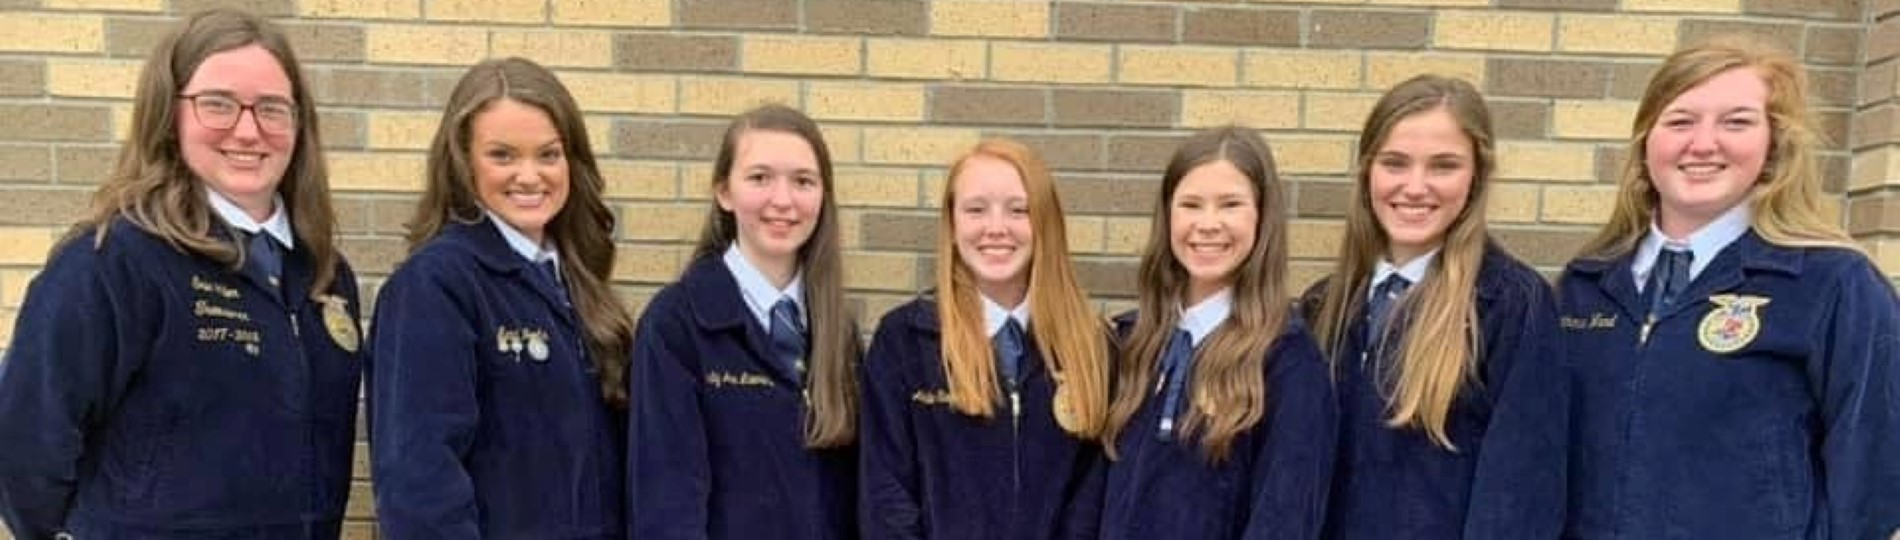 Crockett County FFA Conduct of Chapter Meetings Team